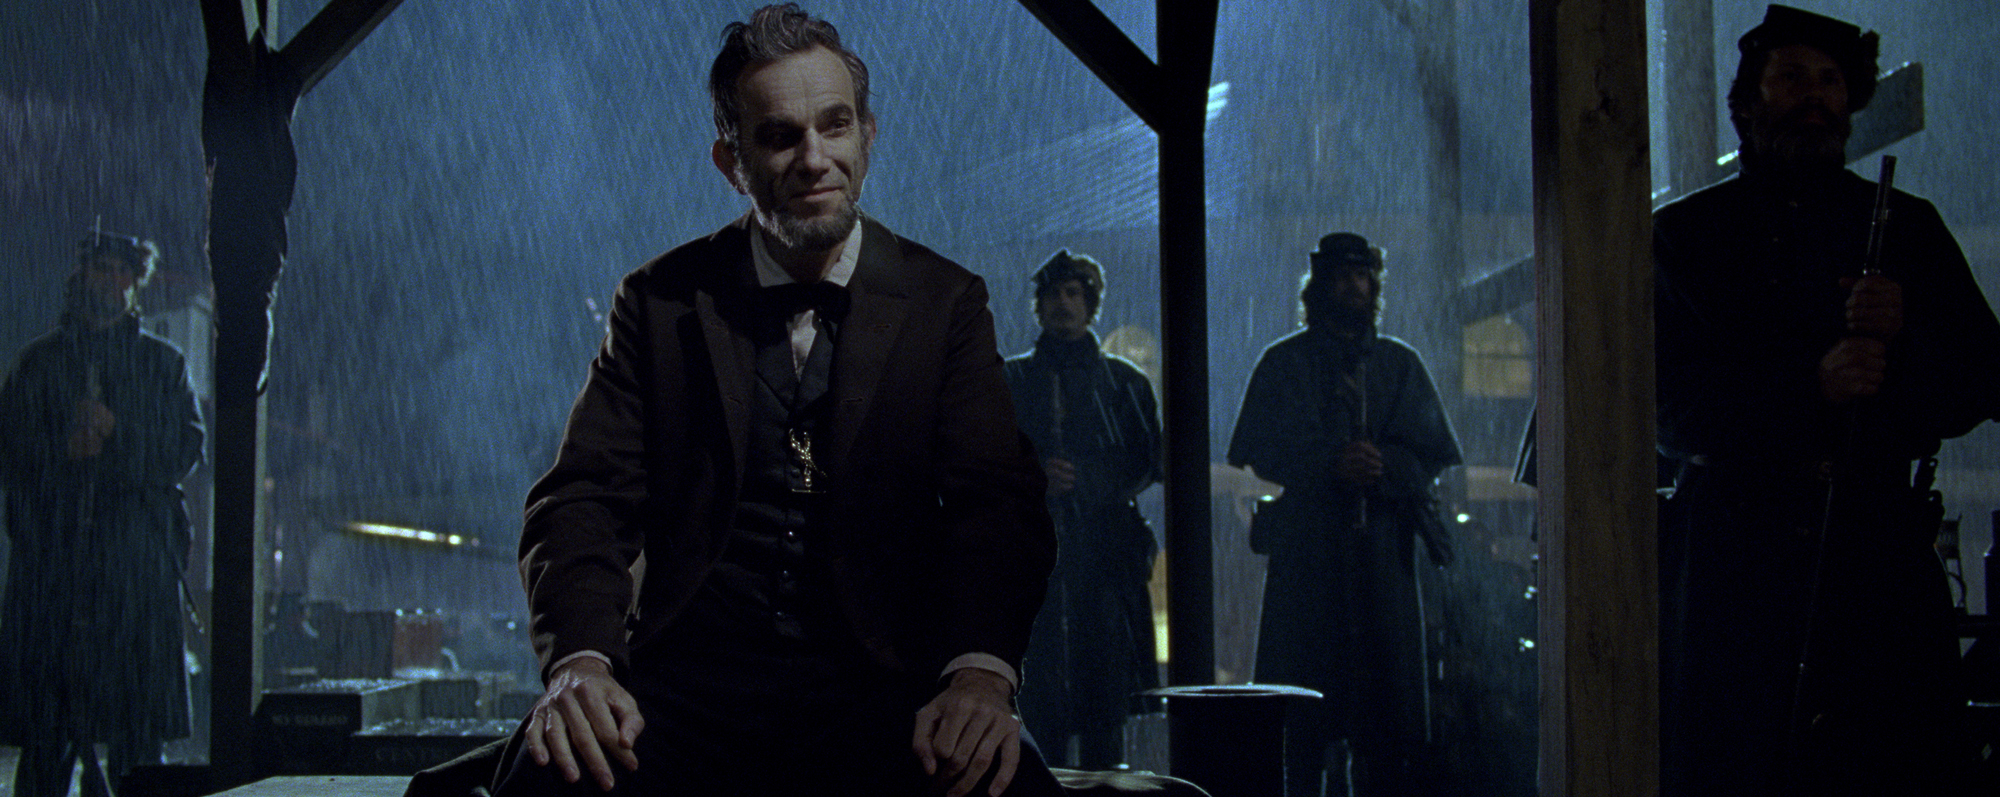 Will Steven Spielberg's Lincoln stand tall at the Oscars?